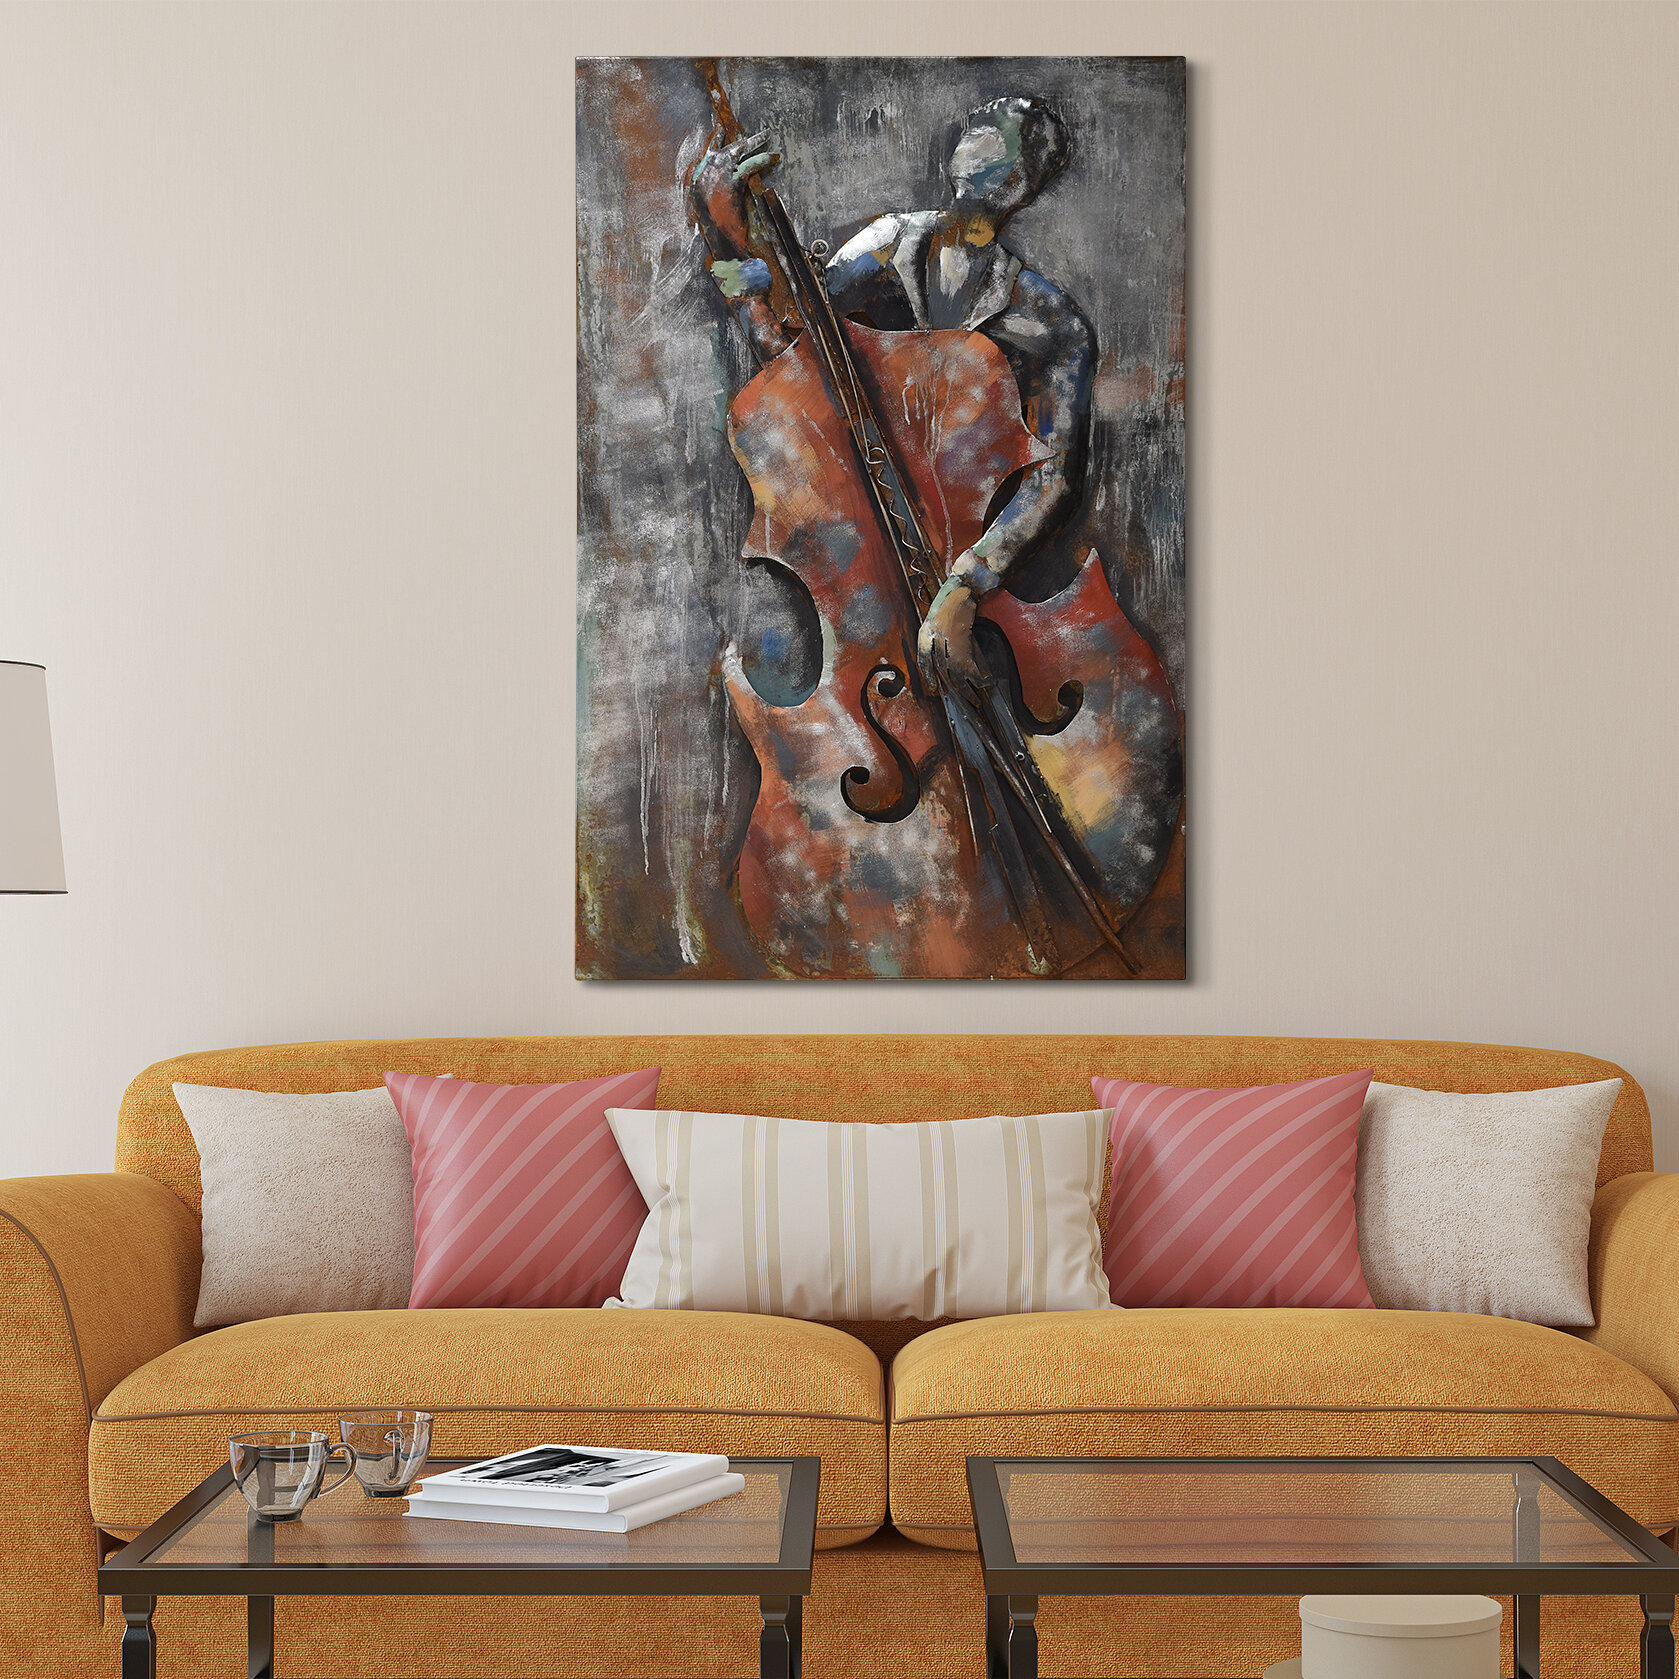 empire art direct the bassist mixed media iron hand painted